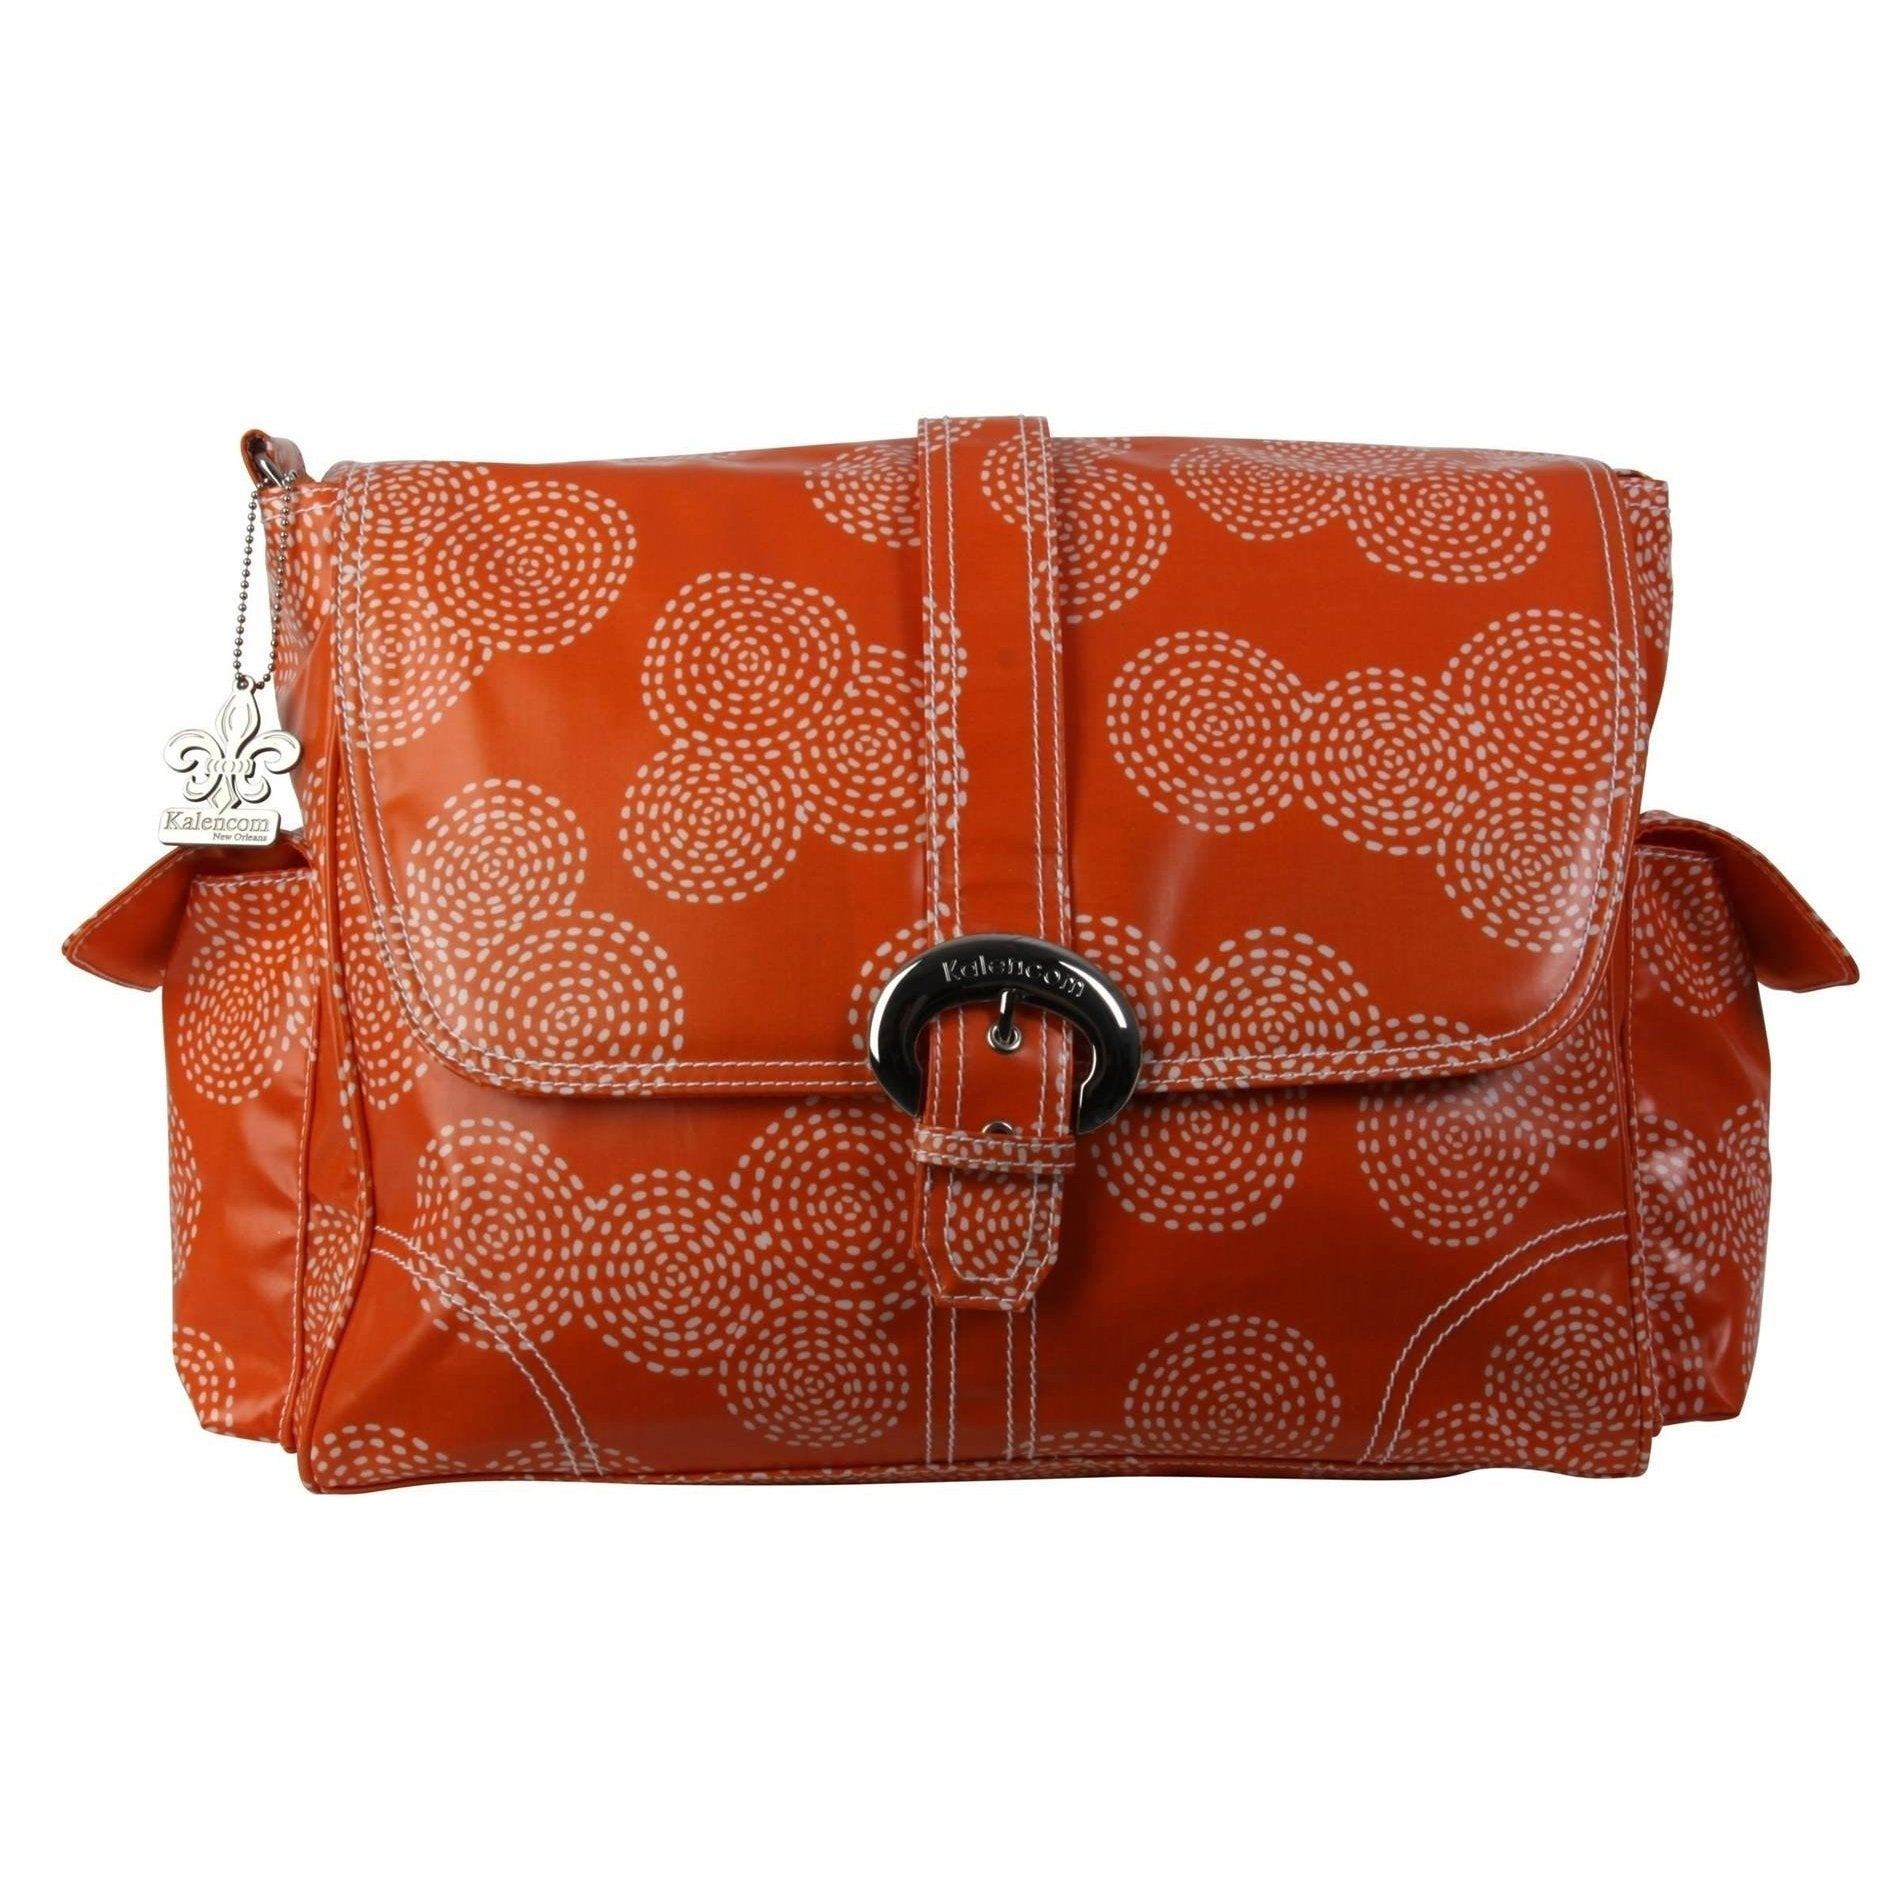 Stitches - Orange Matte Coated Buckle Diaper Bag | Style 2960 - Kalencom-Diaper Bags-Jack and Jill Boutique